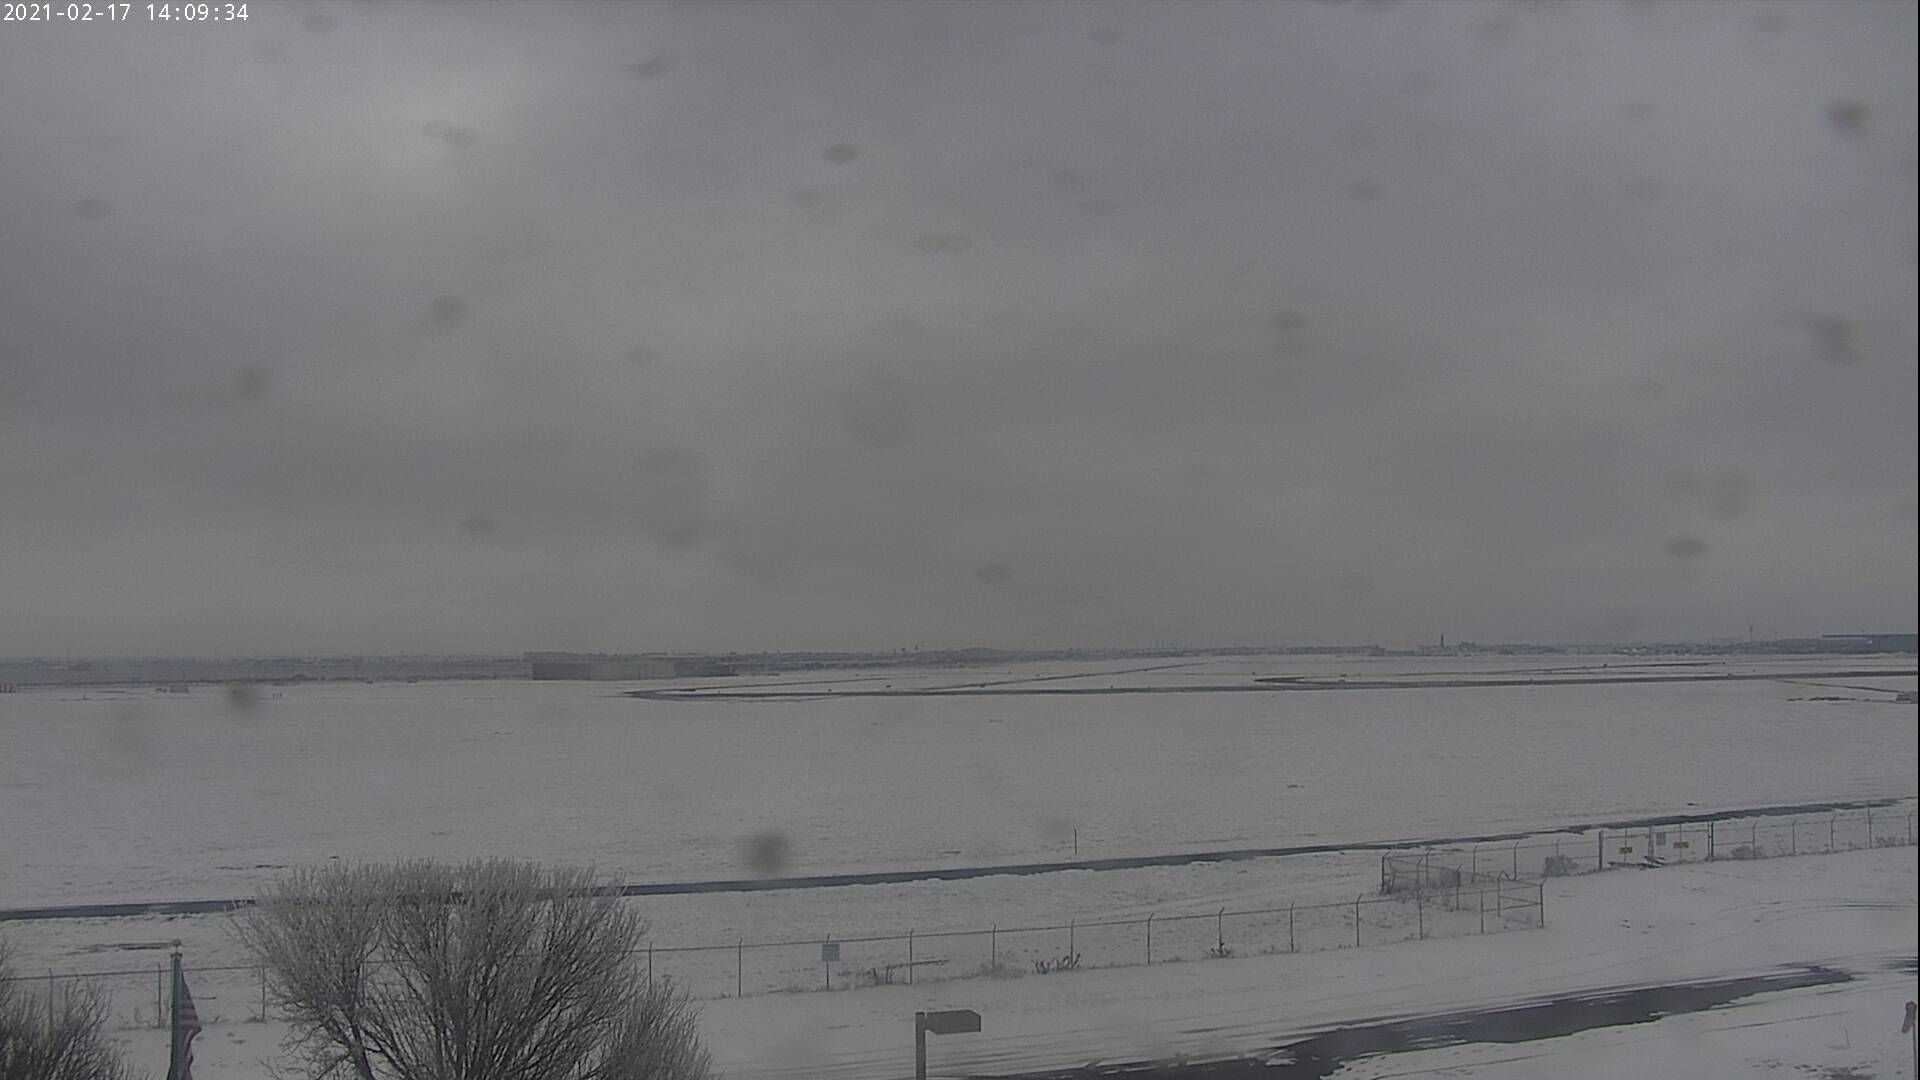 Tower Cam at NWS Midland